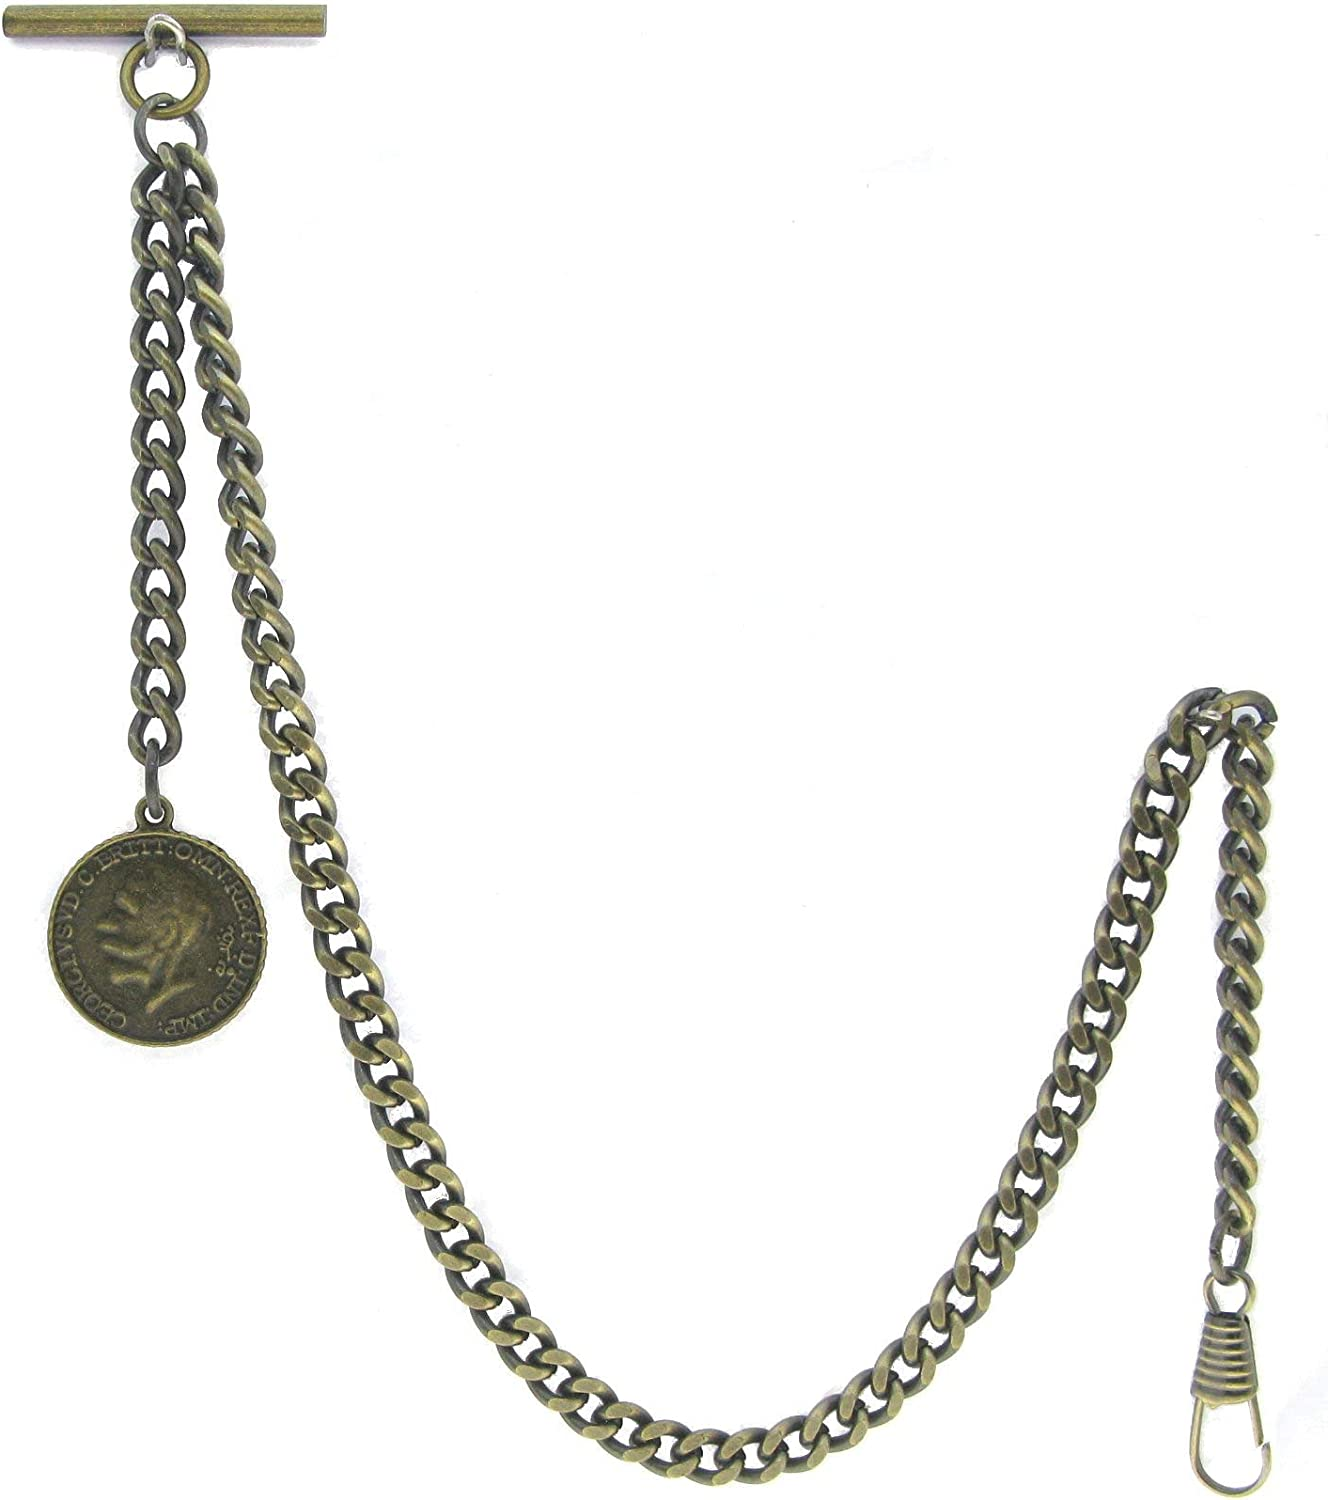 Albert Chain Pocket Watch Chains for Cheap bargain Men Color Antique Old Ranking TOP20 Brass